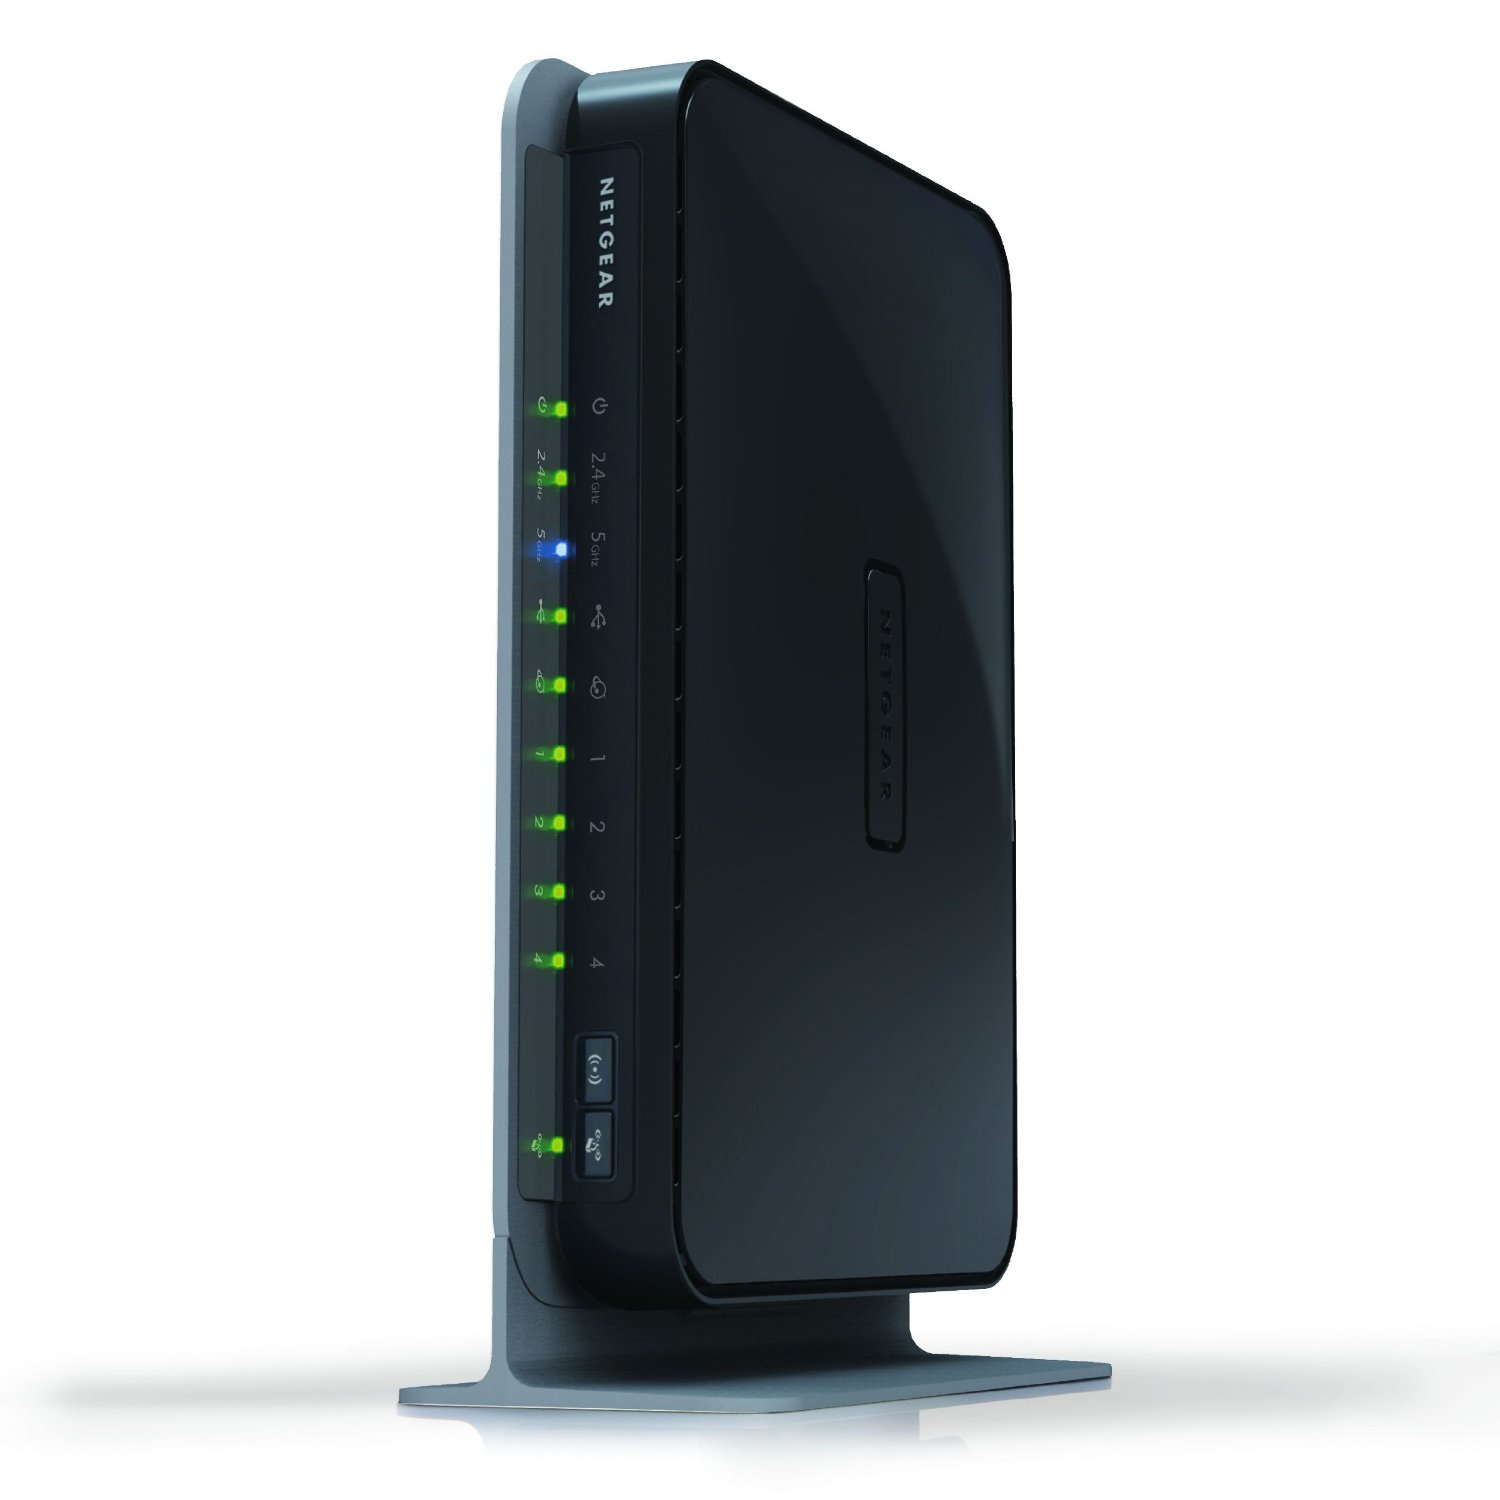 Top 10 Adsl2+ Modems